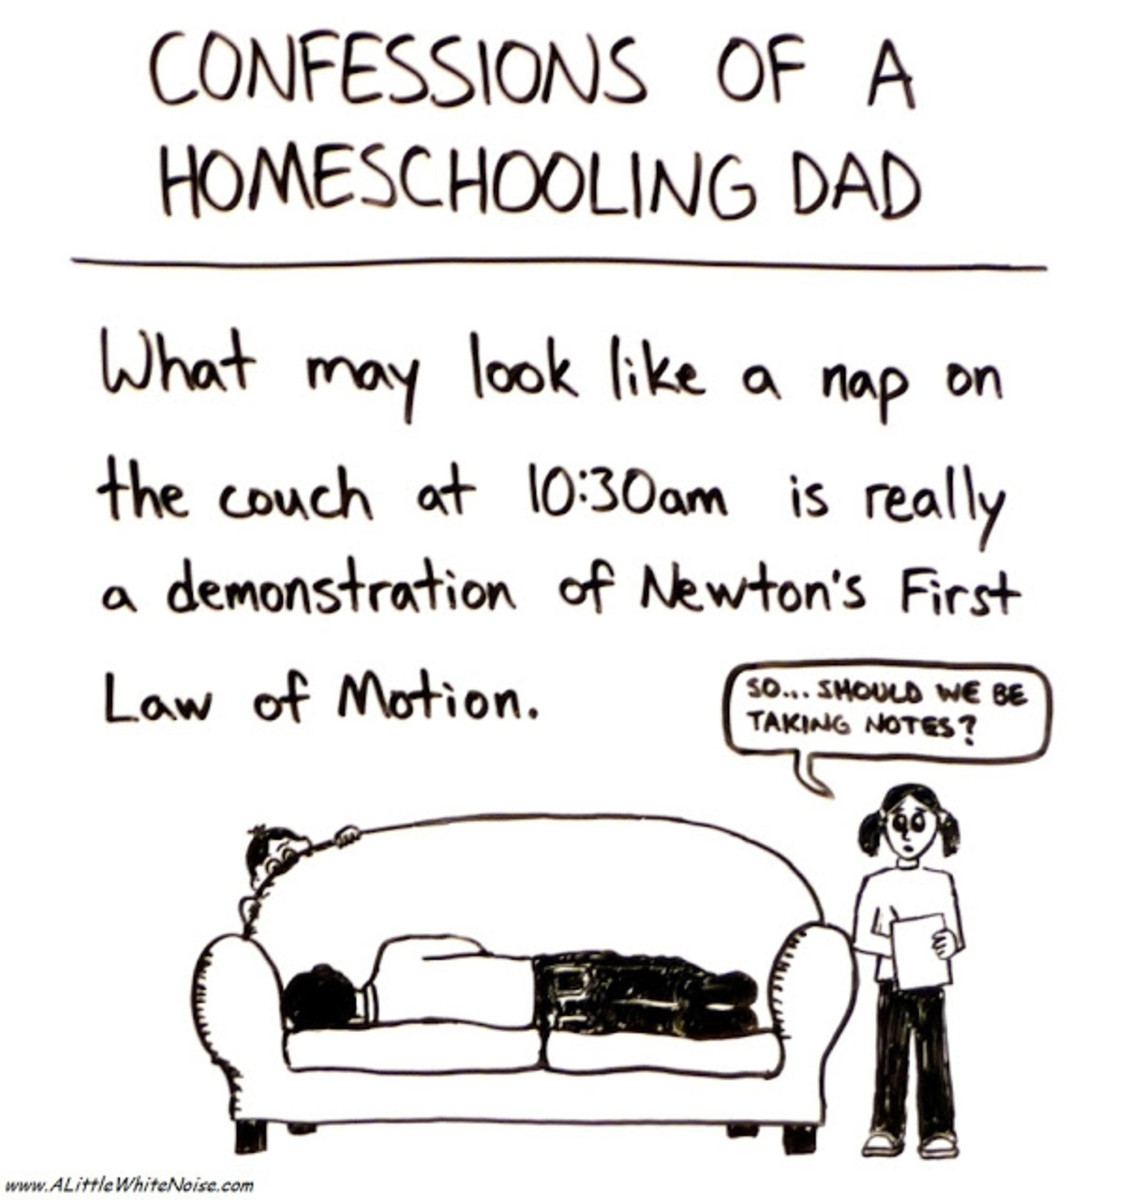 Image credit: http://www.alittlewhitenoise.com/2013/03/confessions-of-homeschooling-dad.html